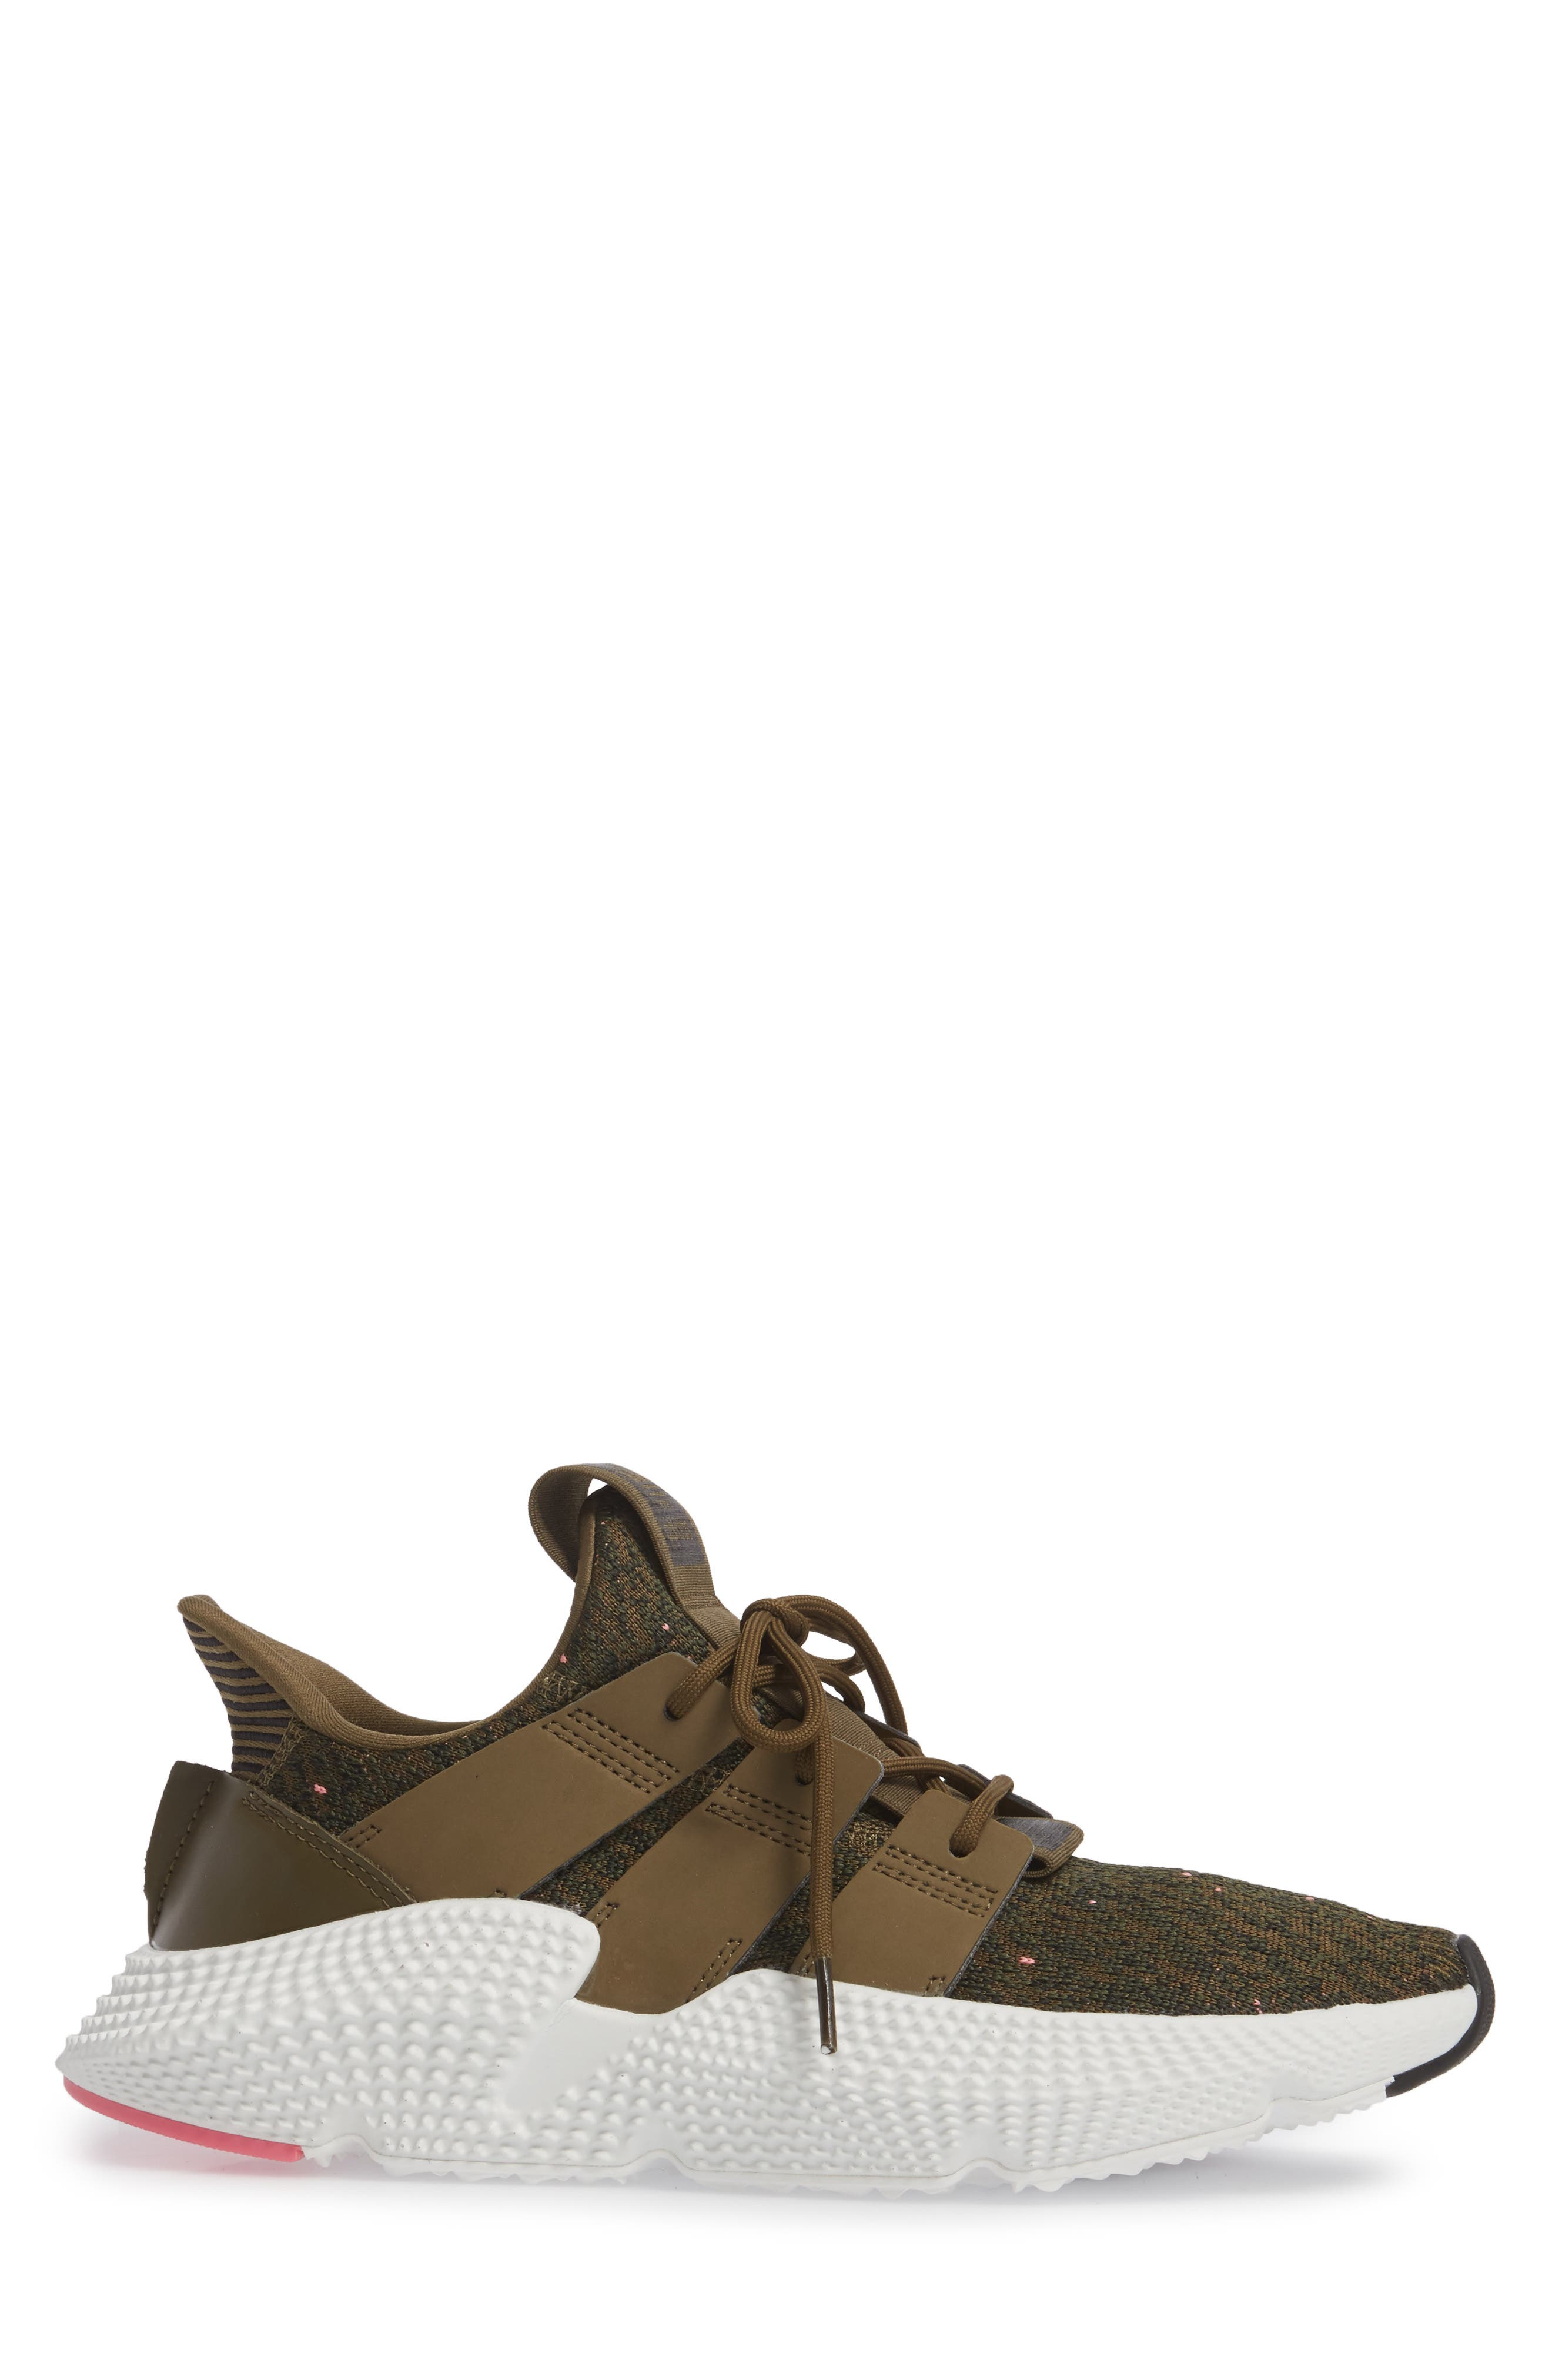 Prophere Sneaker,                             Alternate thumbnail 3, color,                             TRACE OLIVE/ CHALK PINK